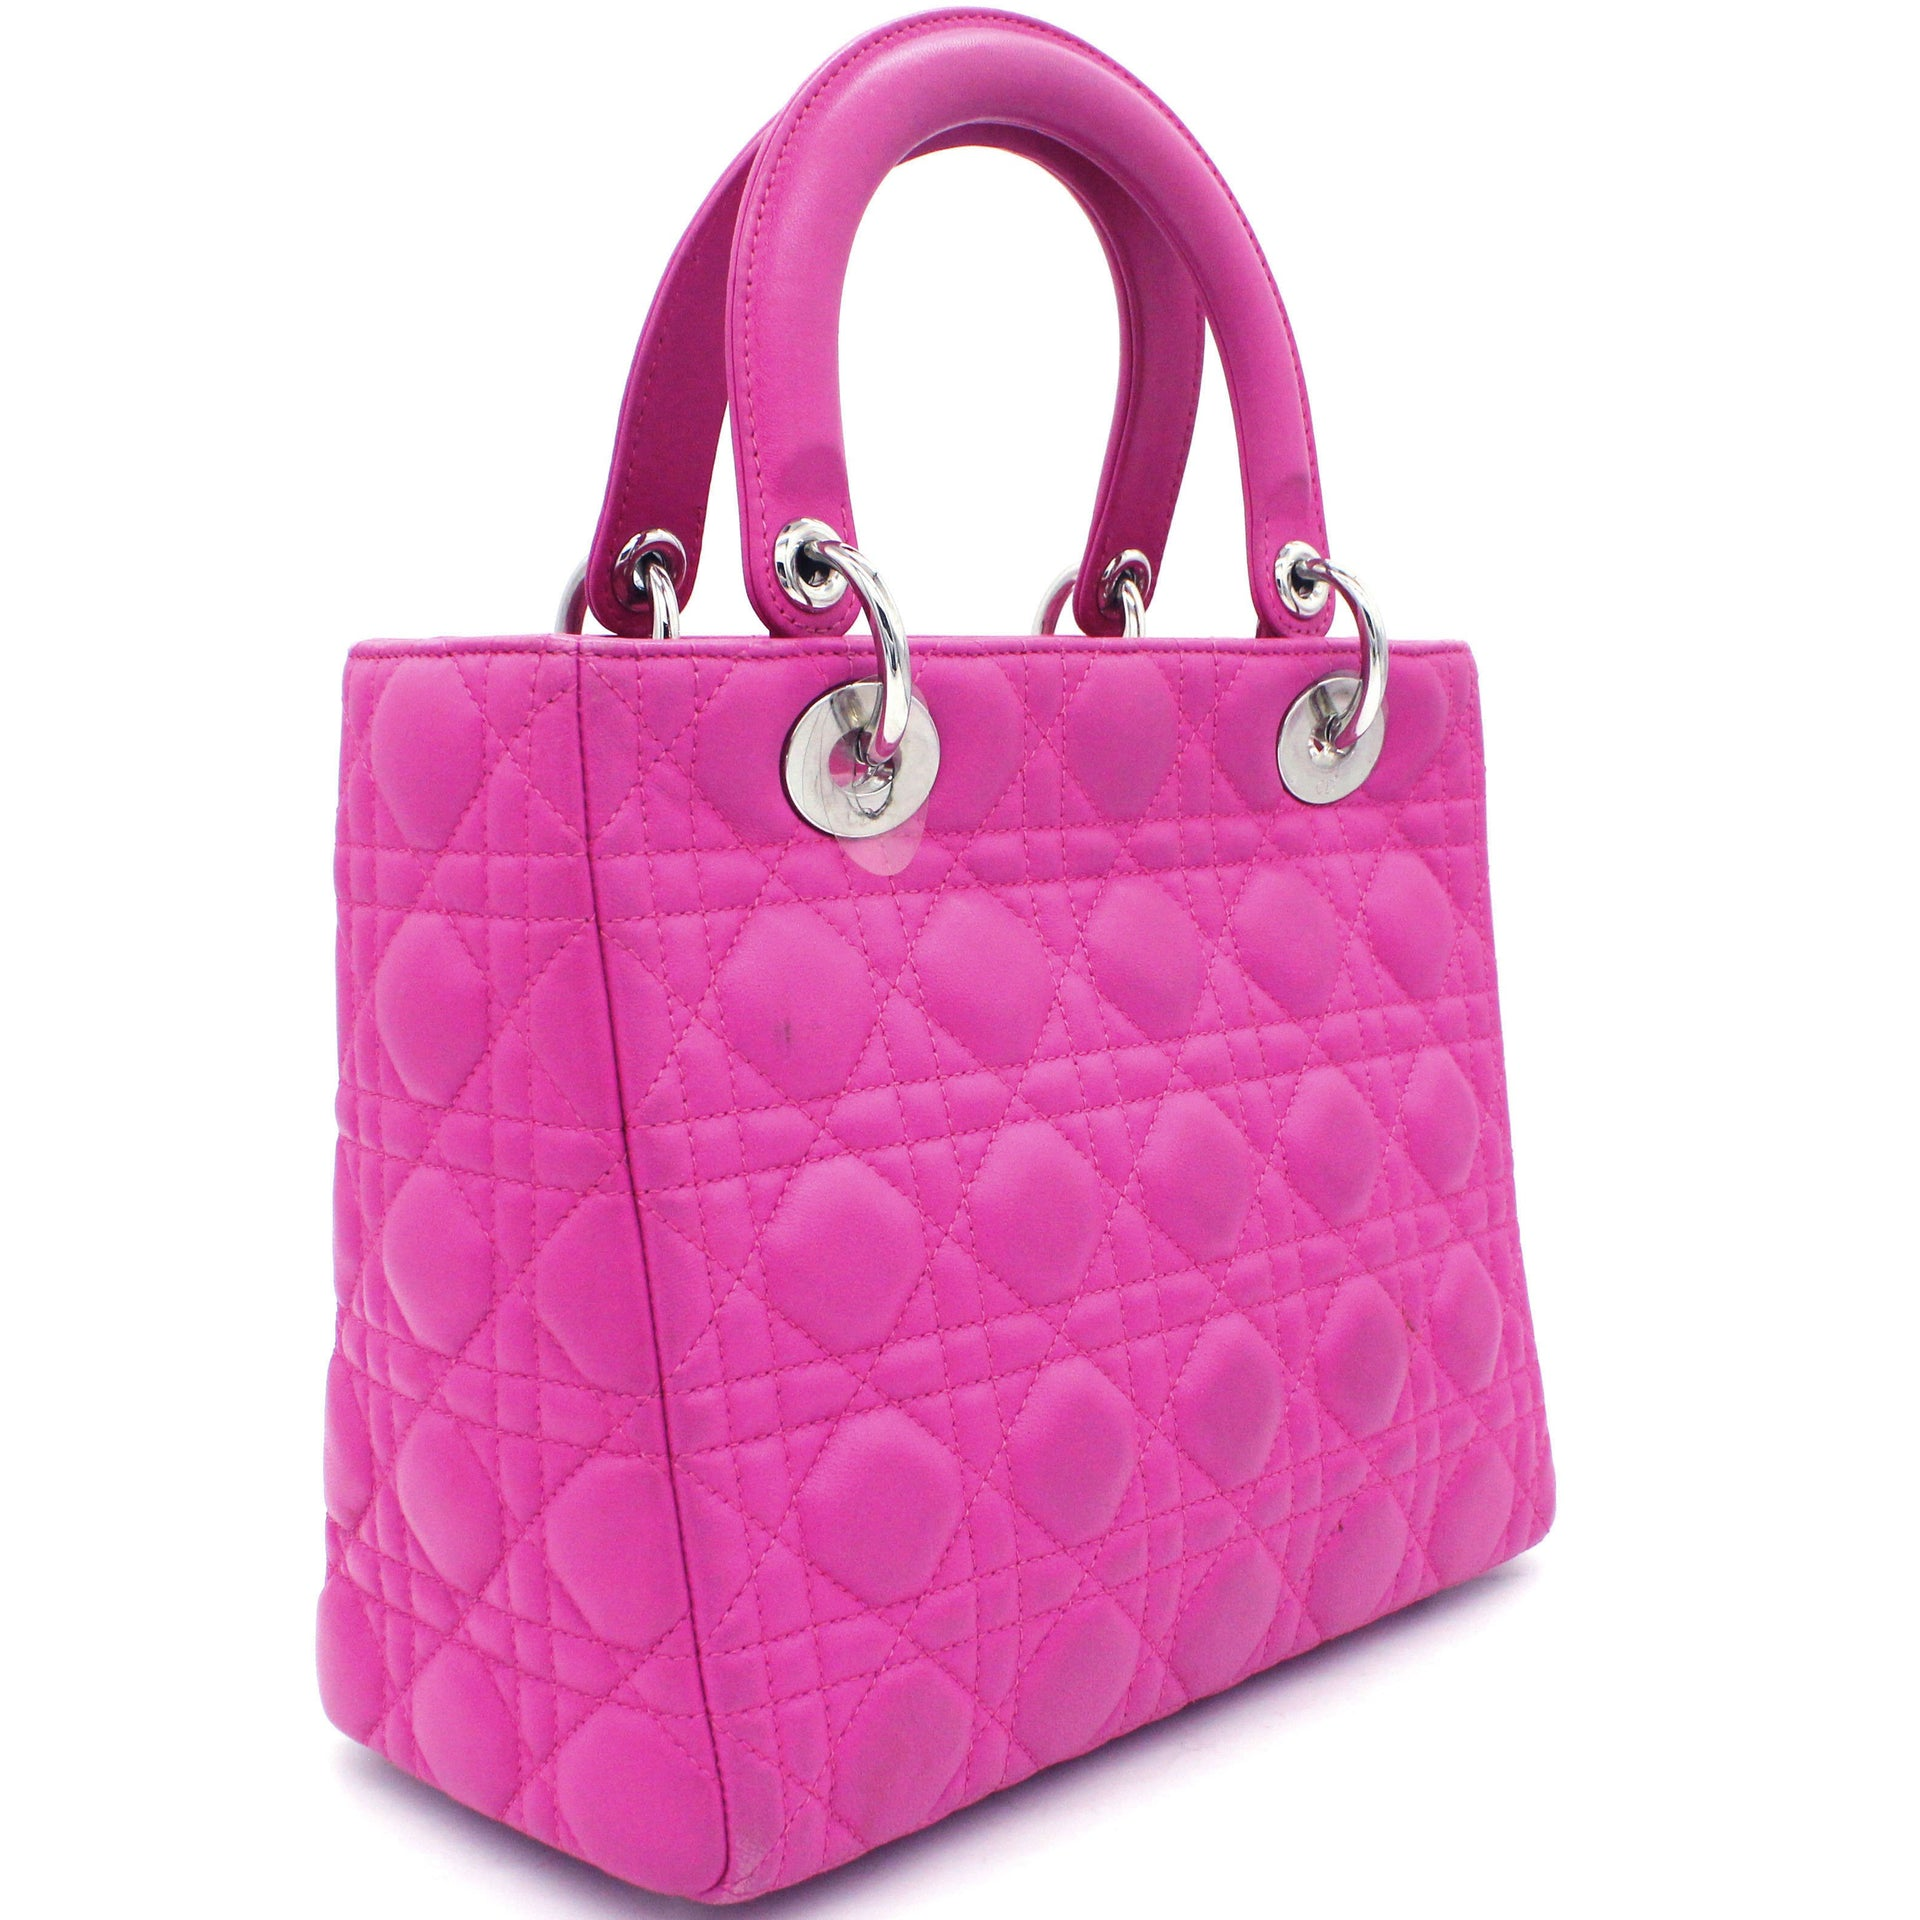 Medium Lady Dior in Fushia Lambskin Leather